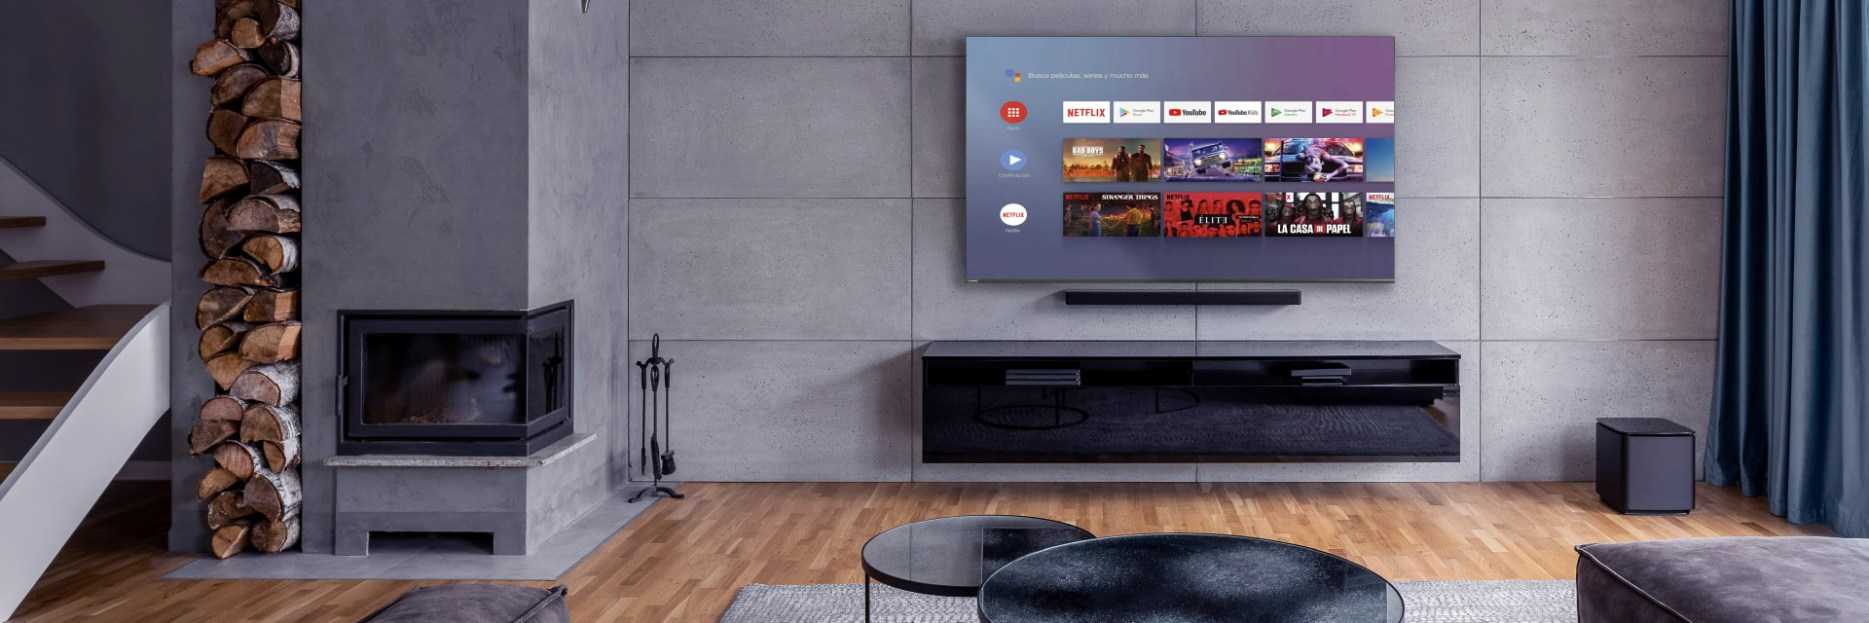 banner tv android 1